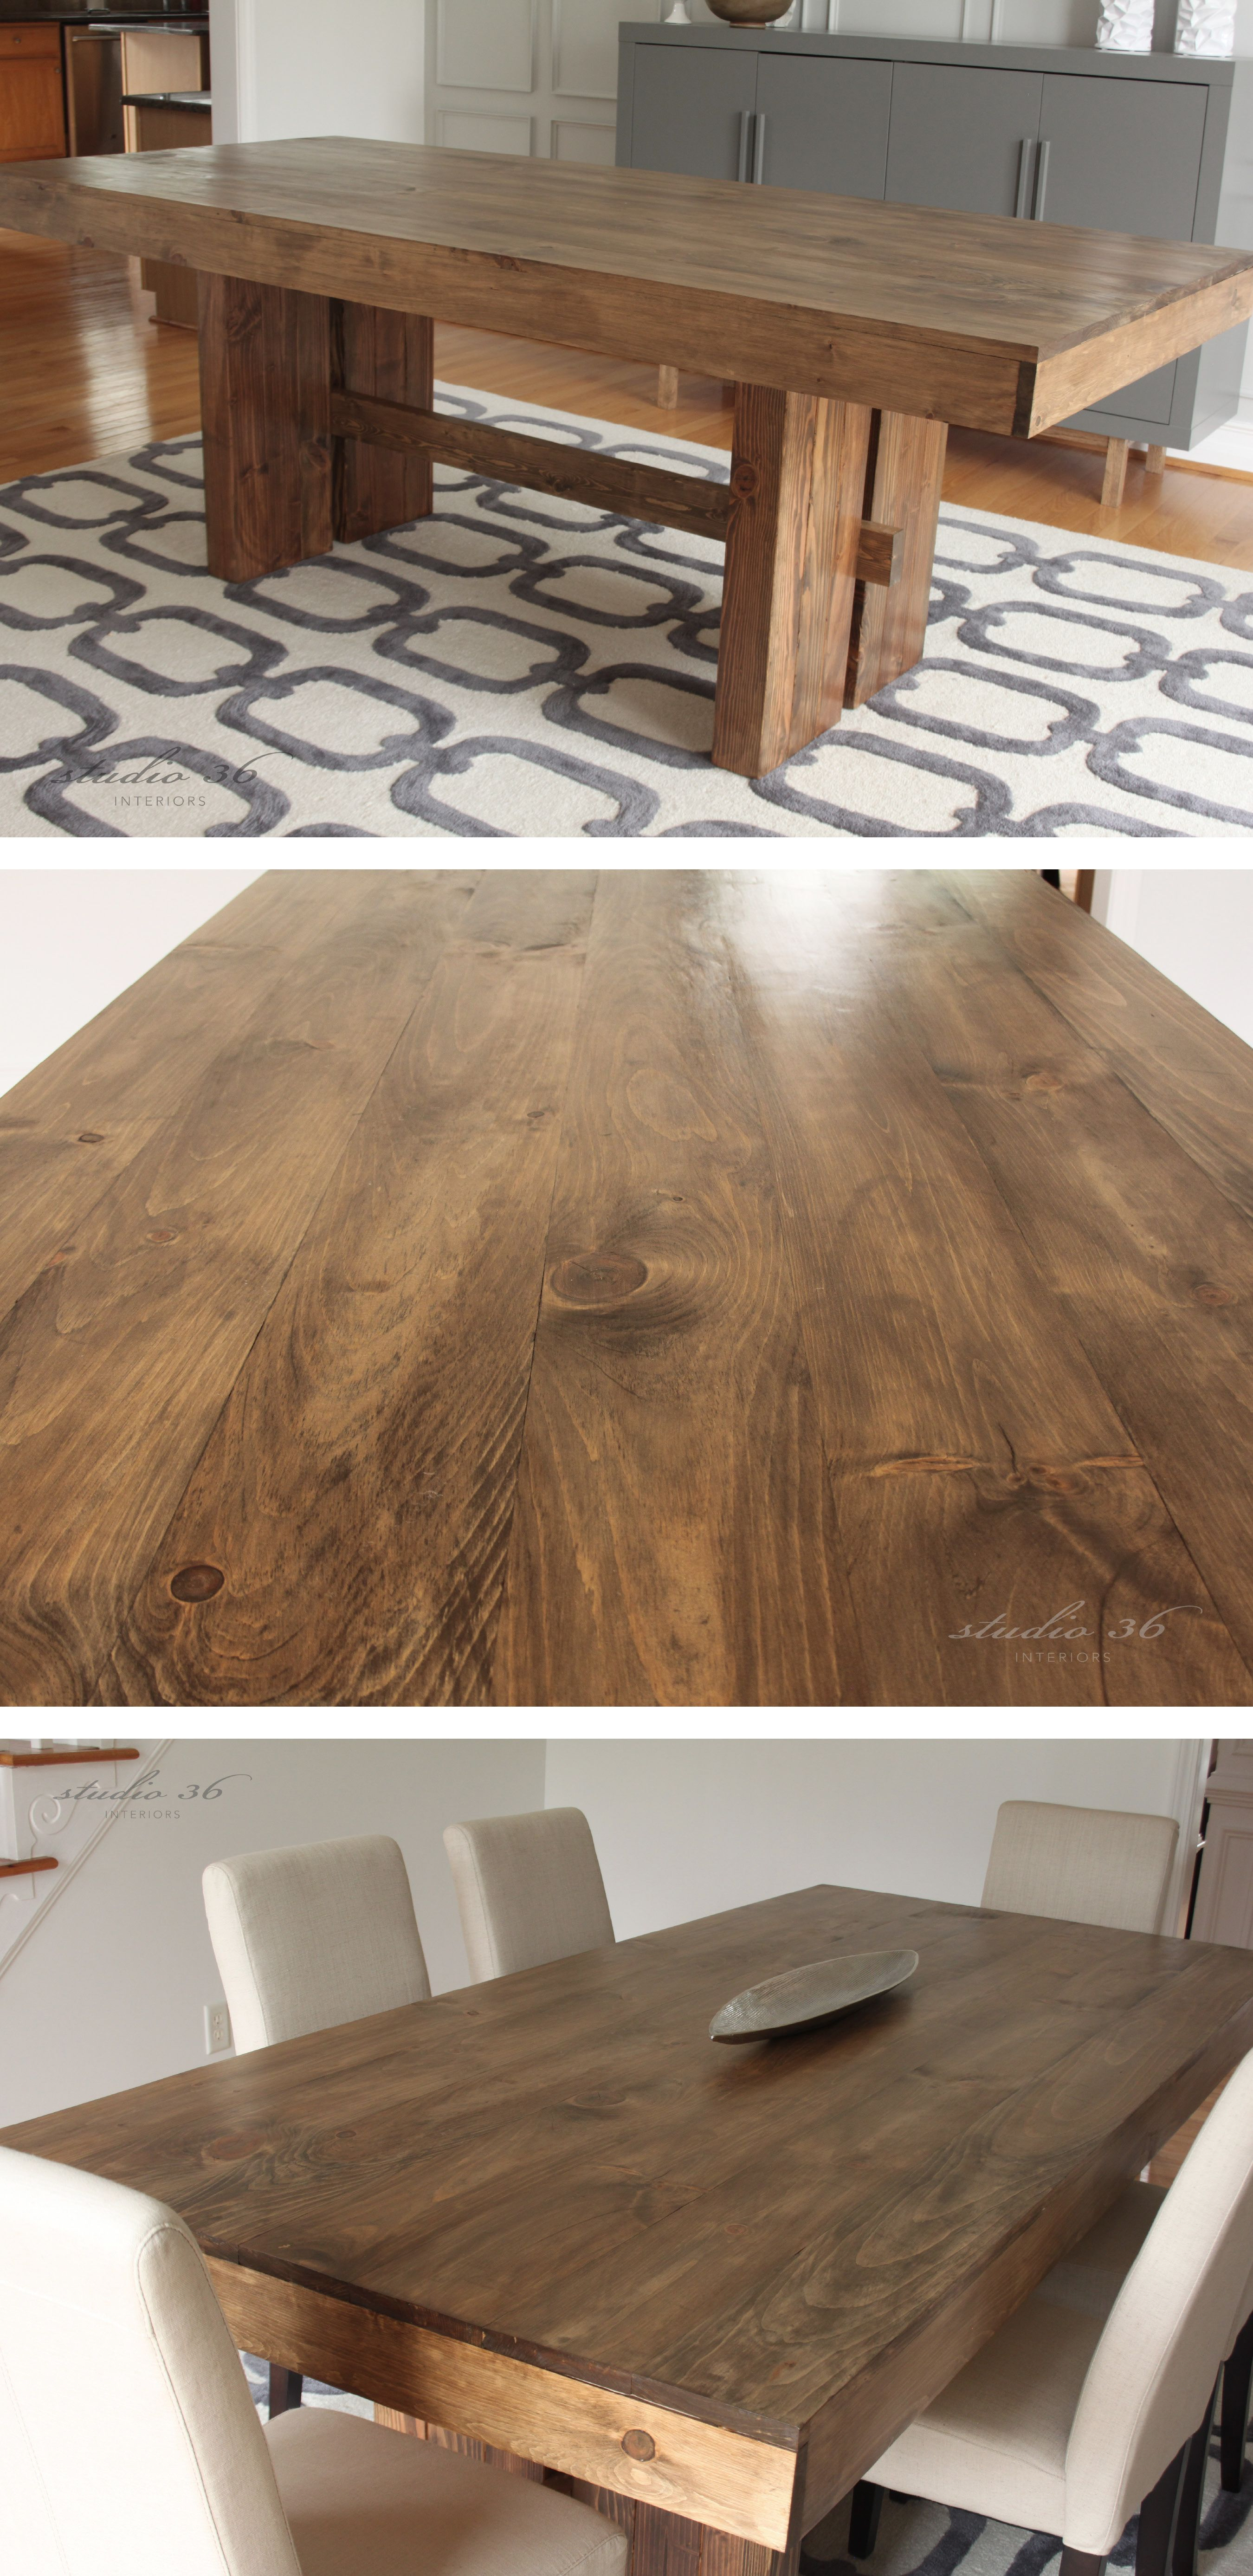 West Elm Inspired DIY Solid Wood Dining Table for $150 | Studio 36 Interiors